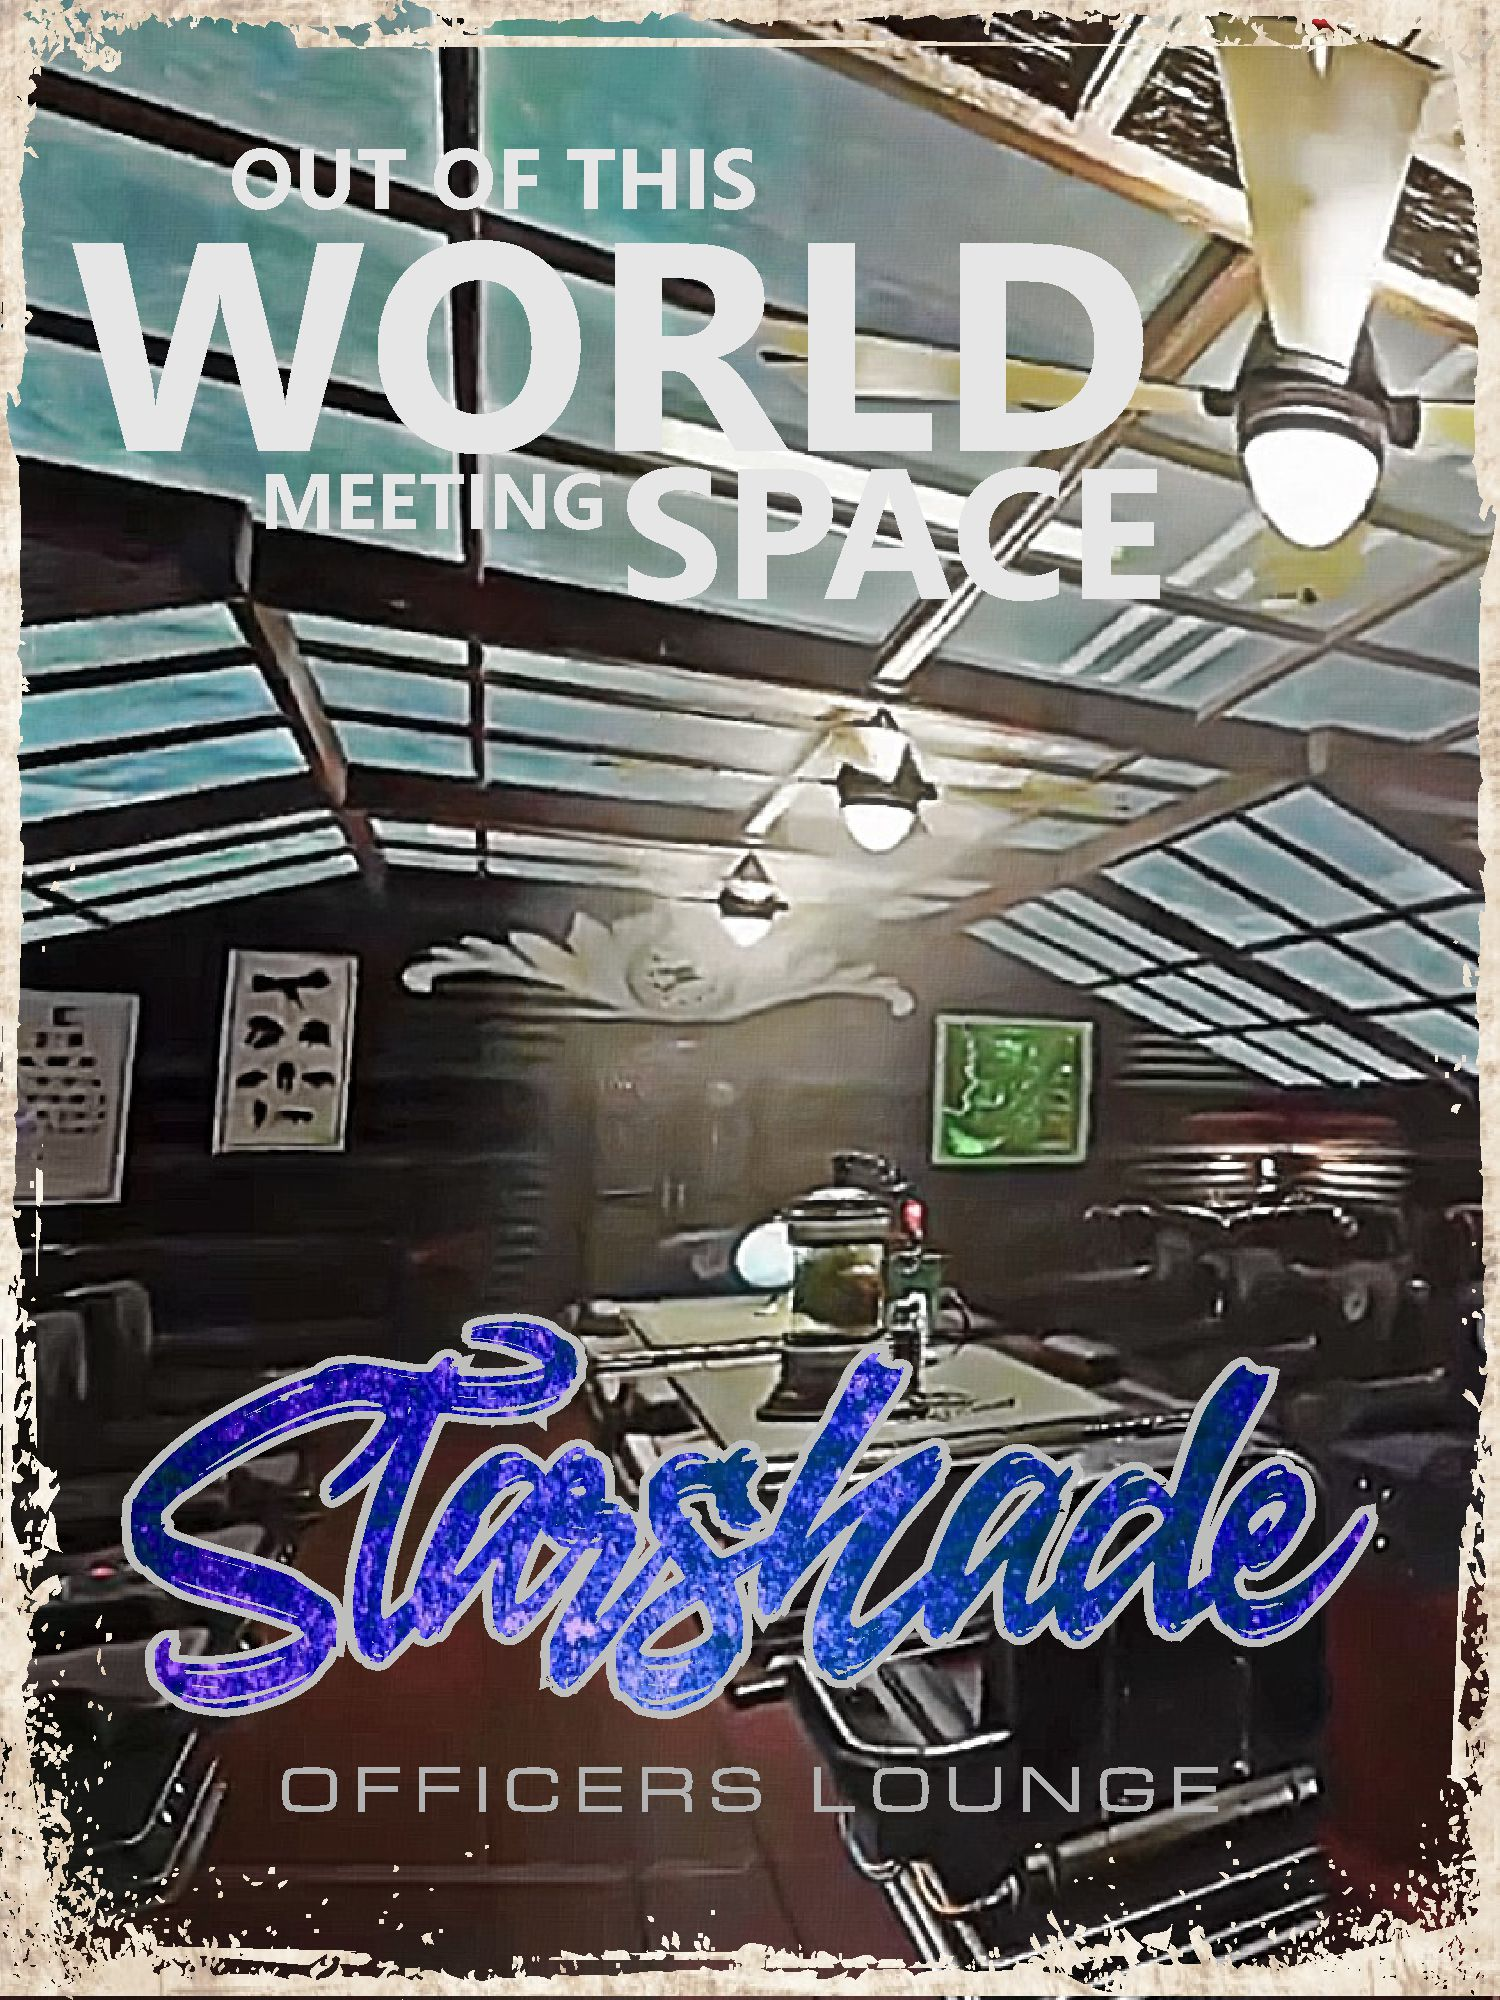 Starshade Officers Lounge